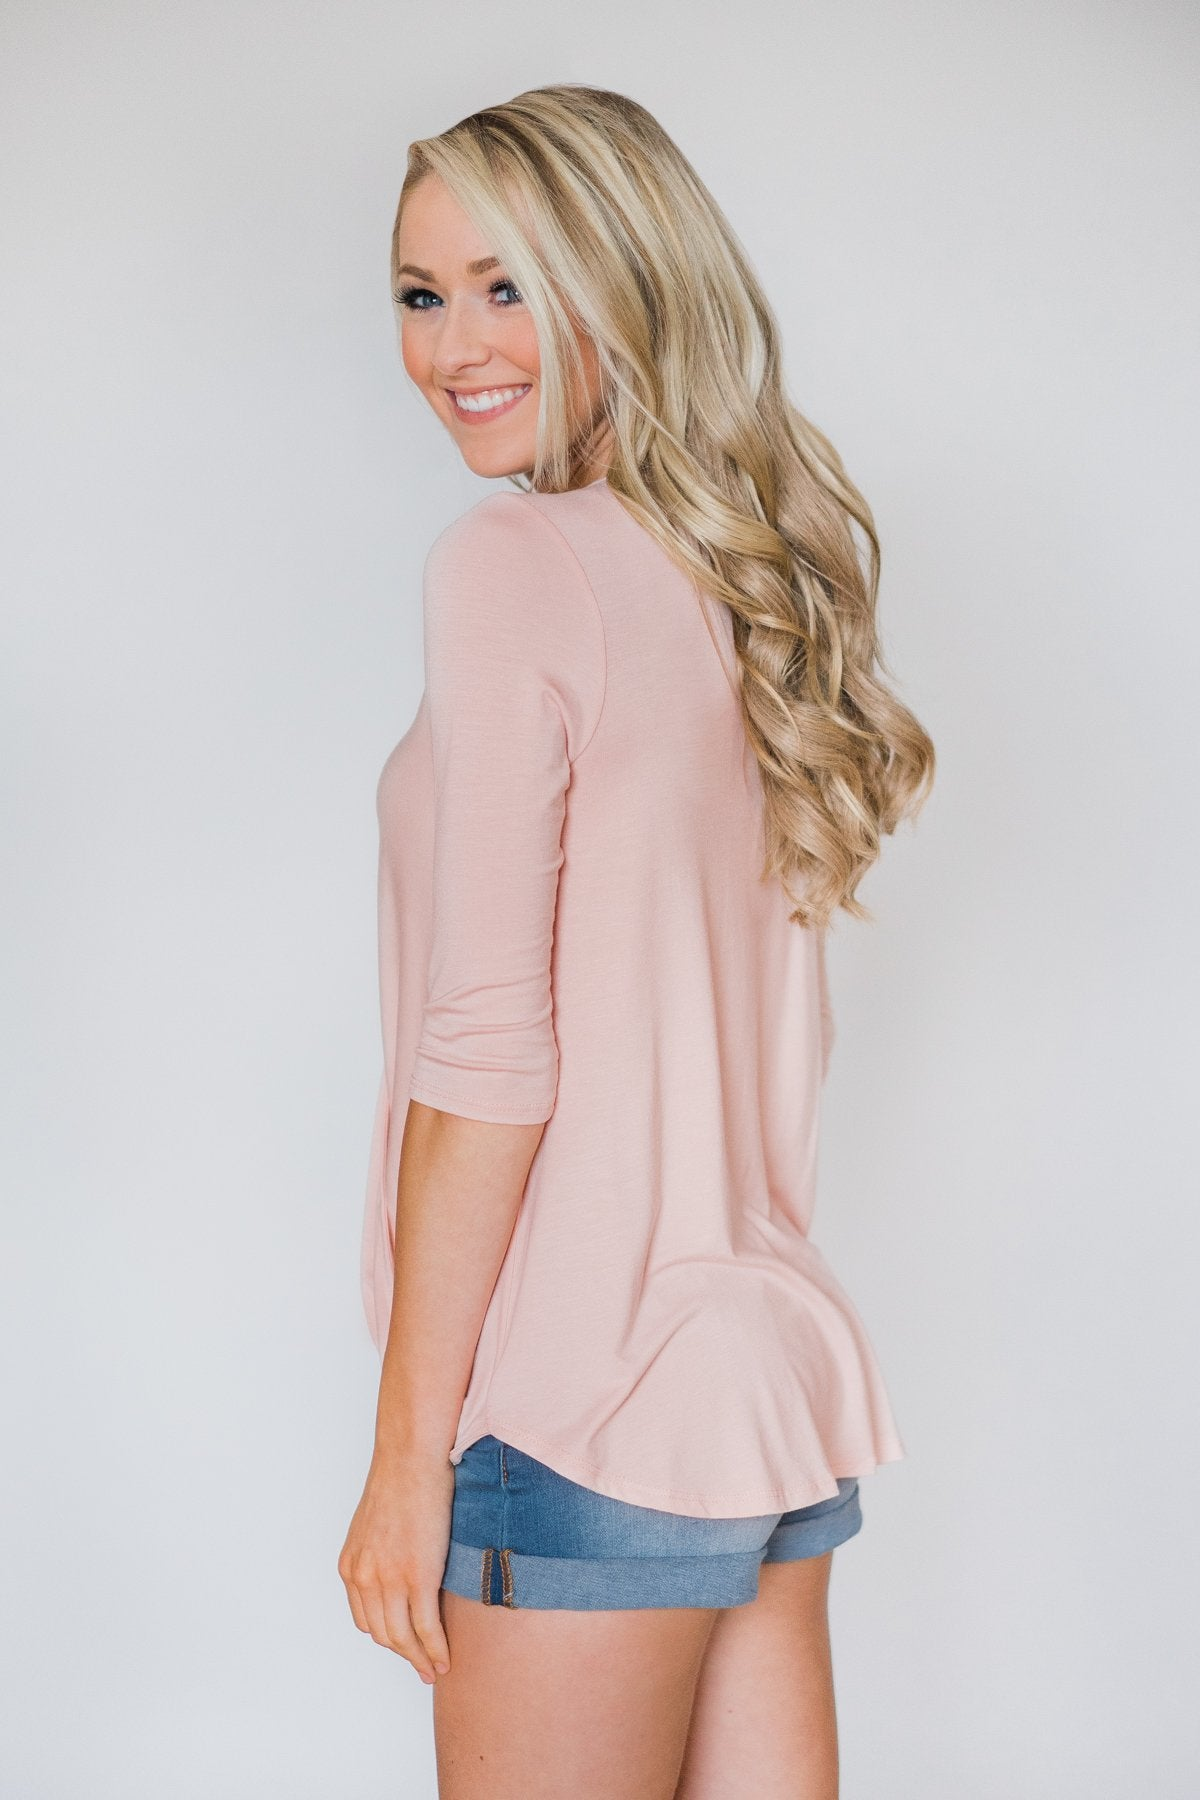 Cross My Heart 3/4 Sleeve Wrap Top- Blush